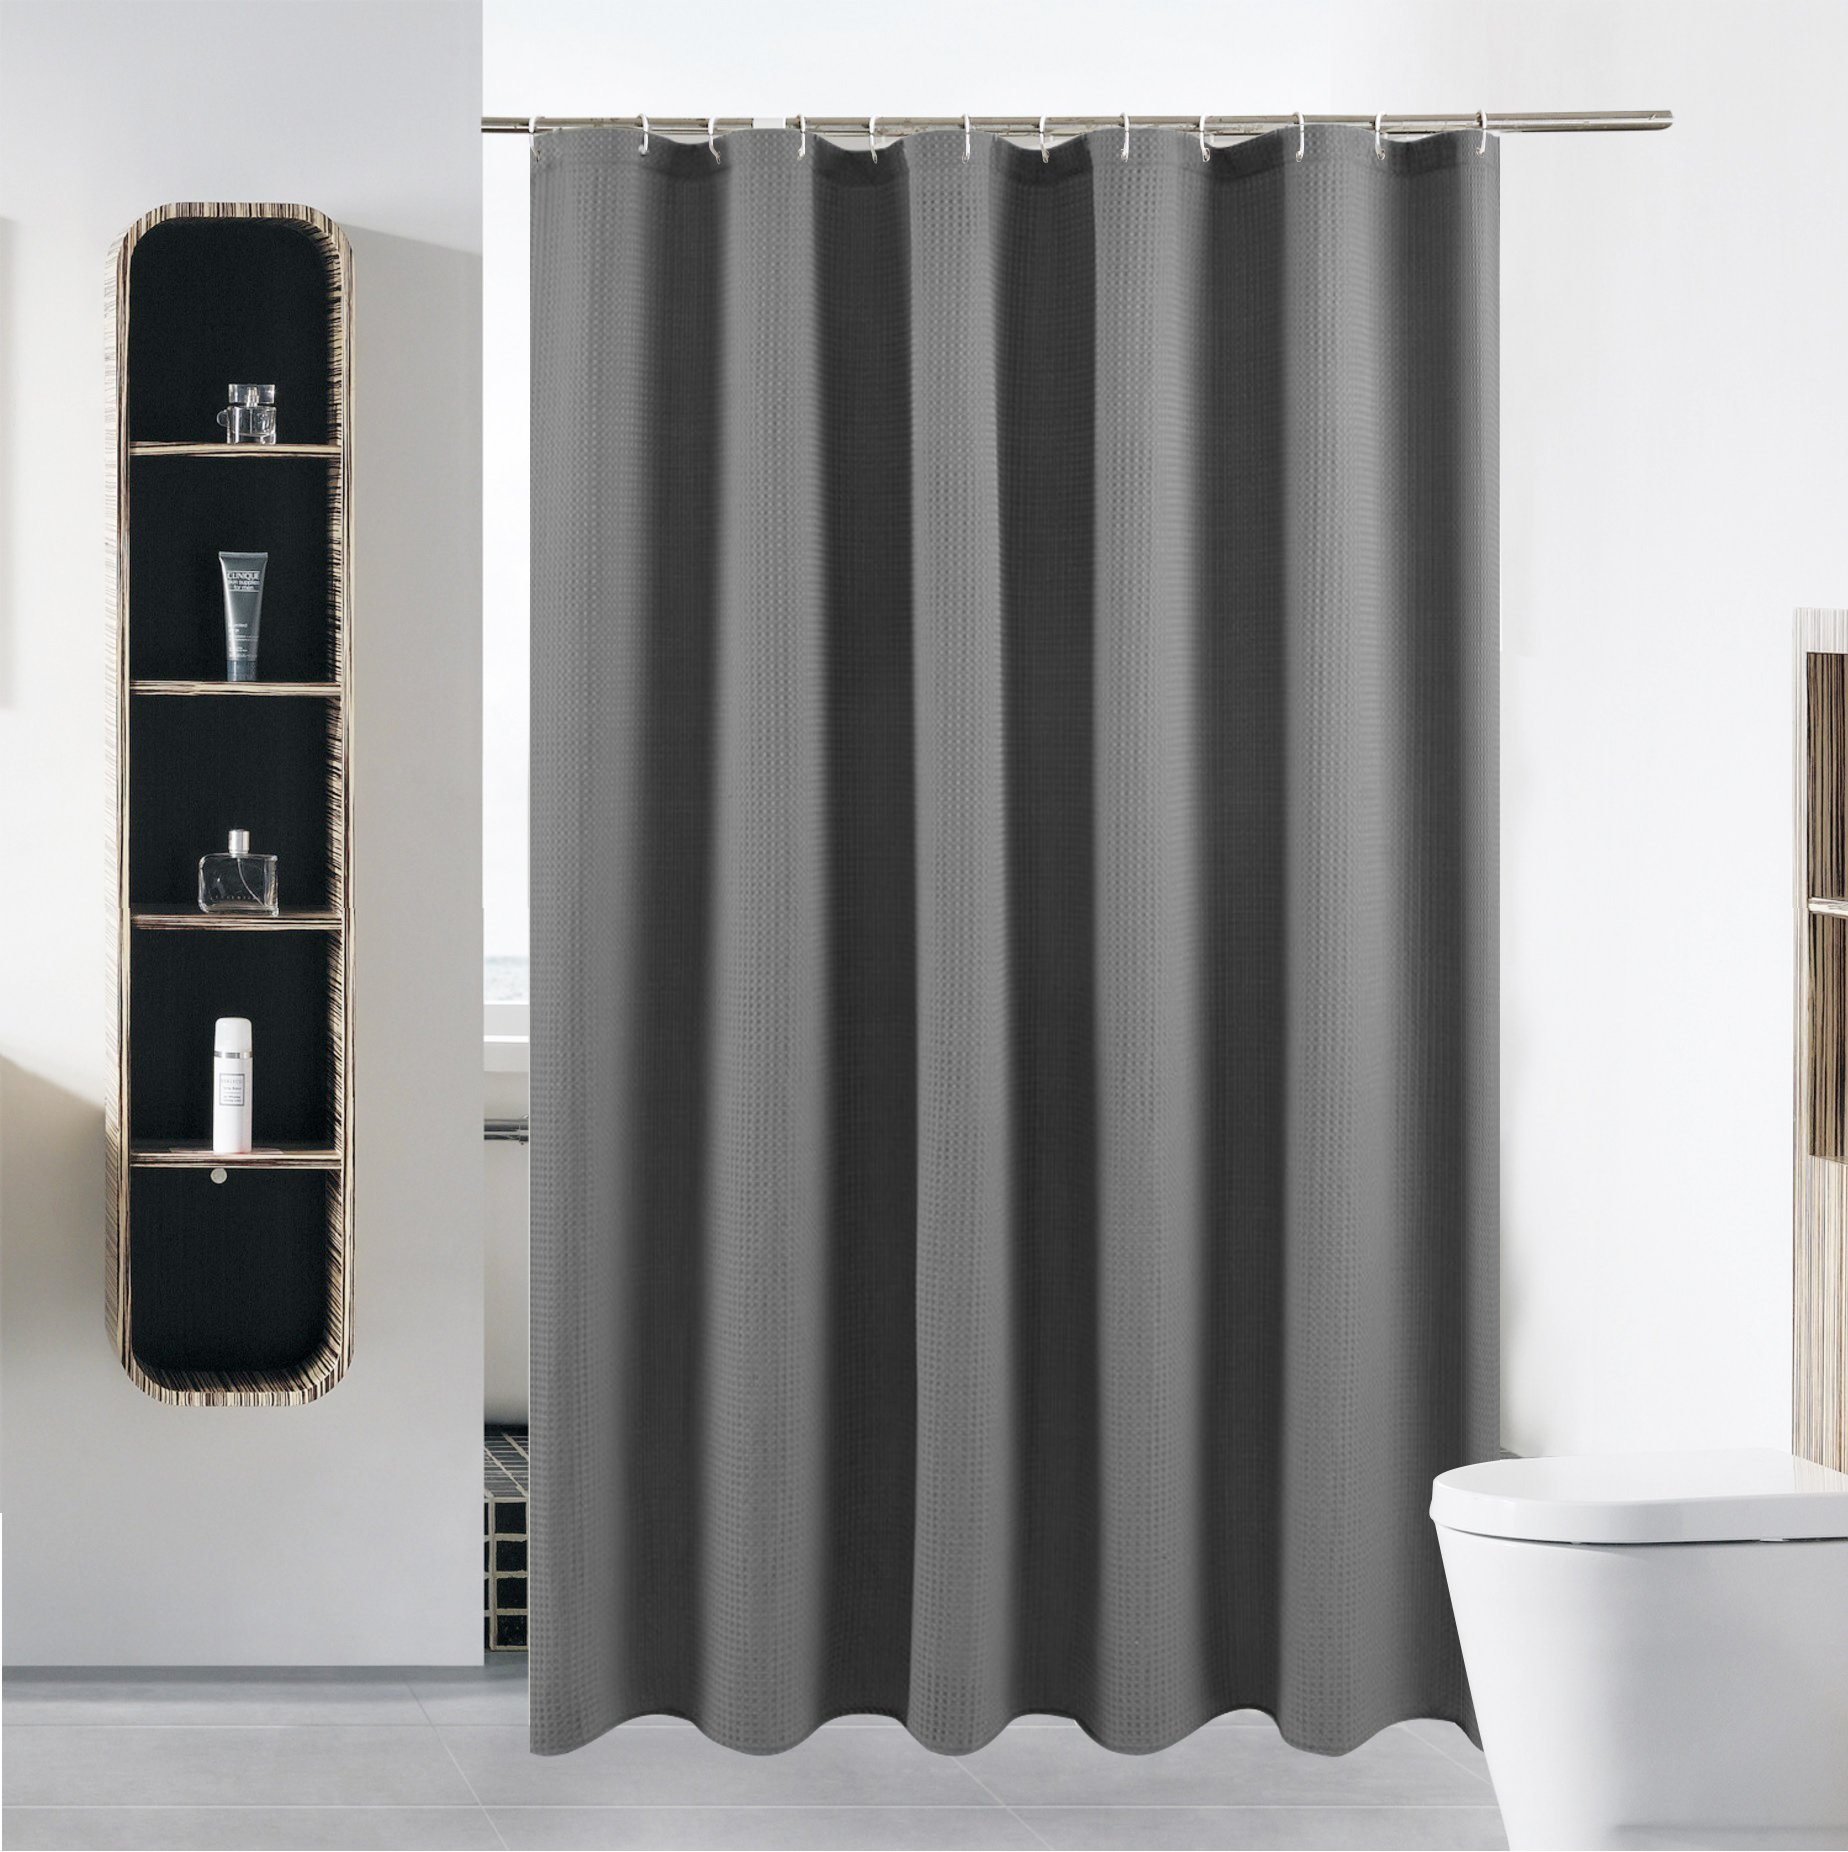 S·Lattye Luxury Fabric Shower Curtain Mildew Resistant Water Repellent Washable Cloth (Hotel Quality, Eco Friendly, Heavy Weight Hem) Plastic Hooks - 72'' x 78'', Long, Gray Waffle